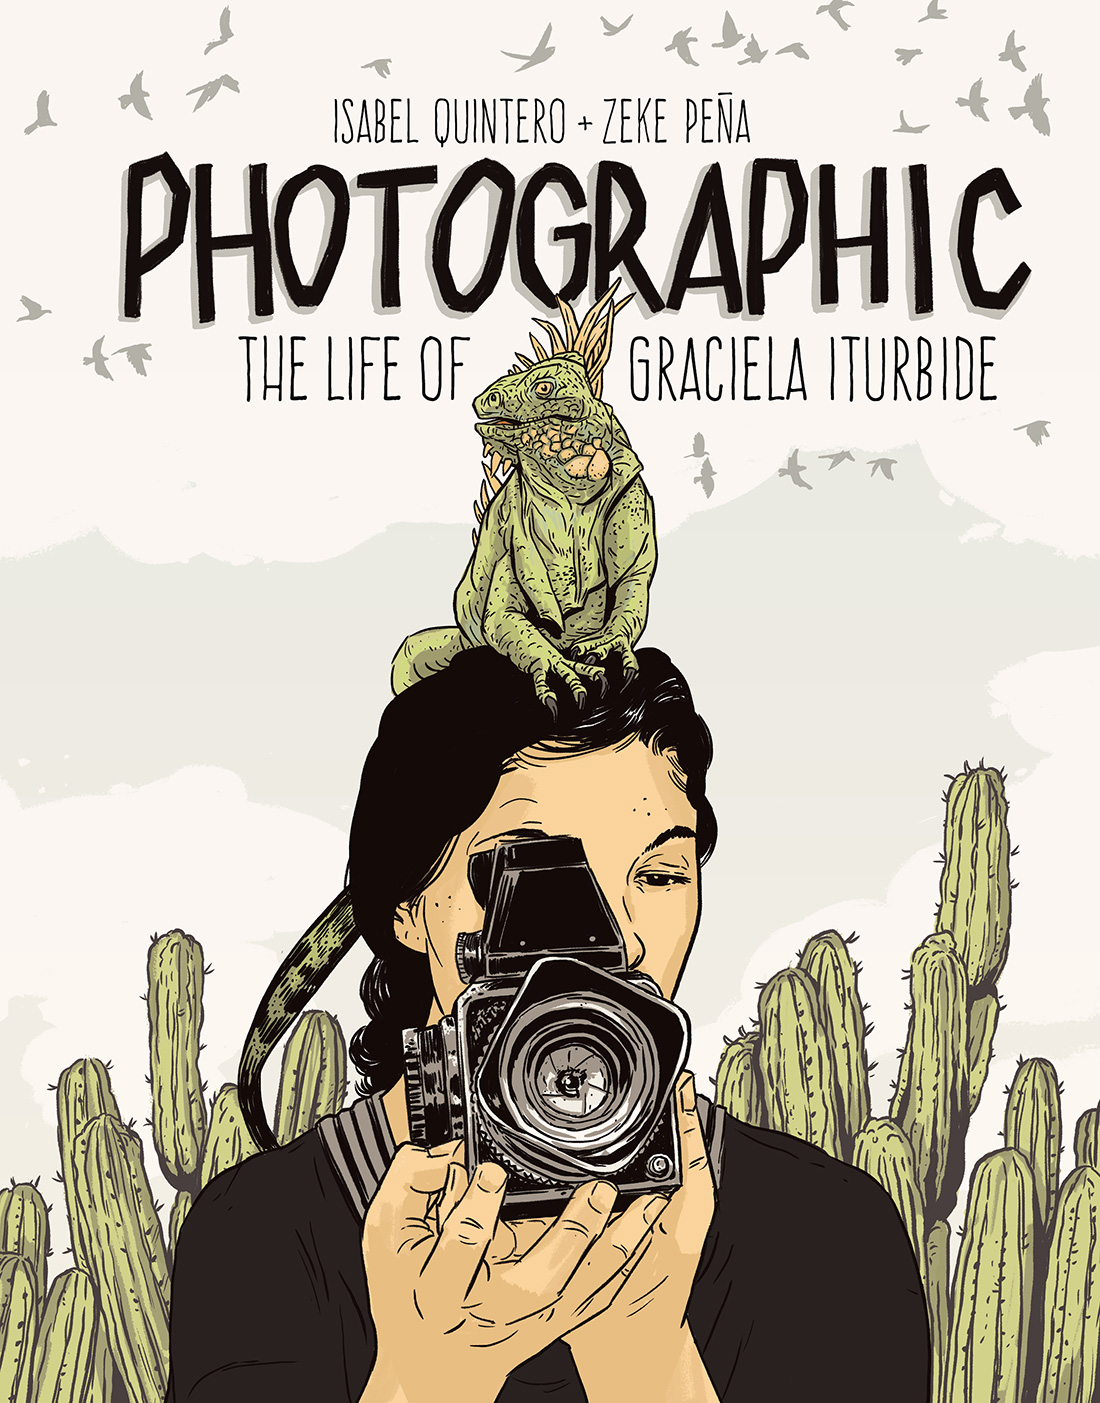 Book cover featuring an illustration of a woman in the center holding a camera. She has an iguana on her head.